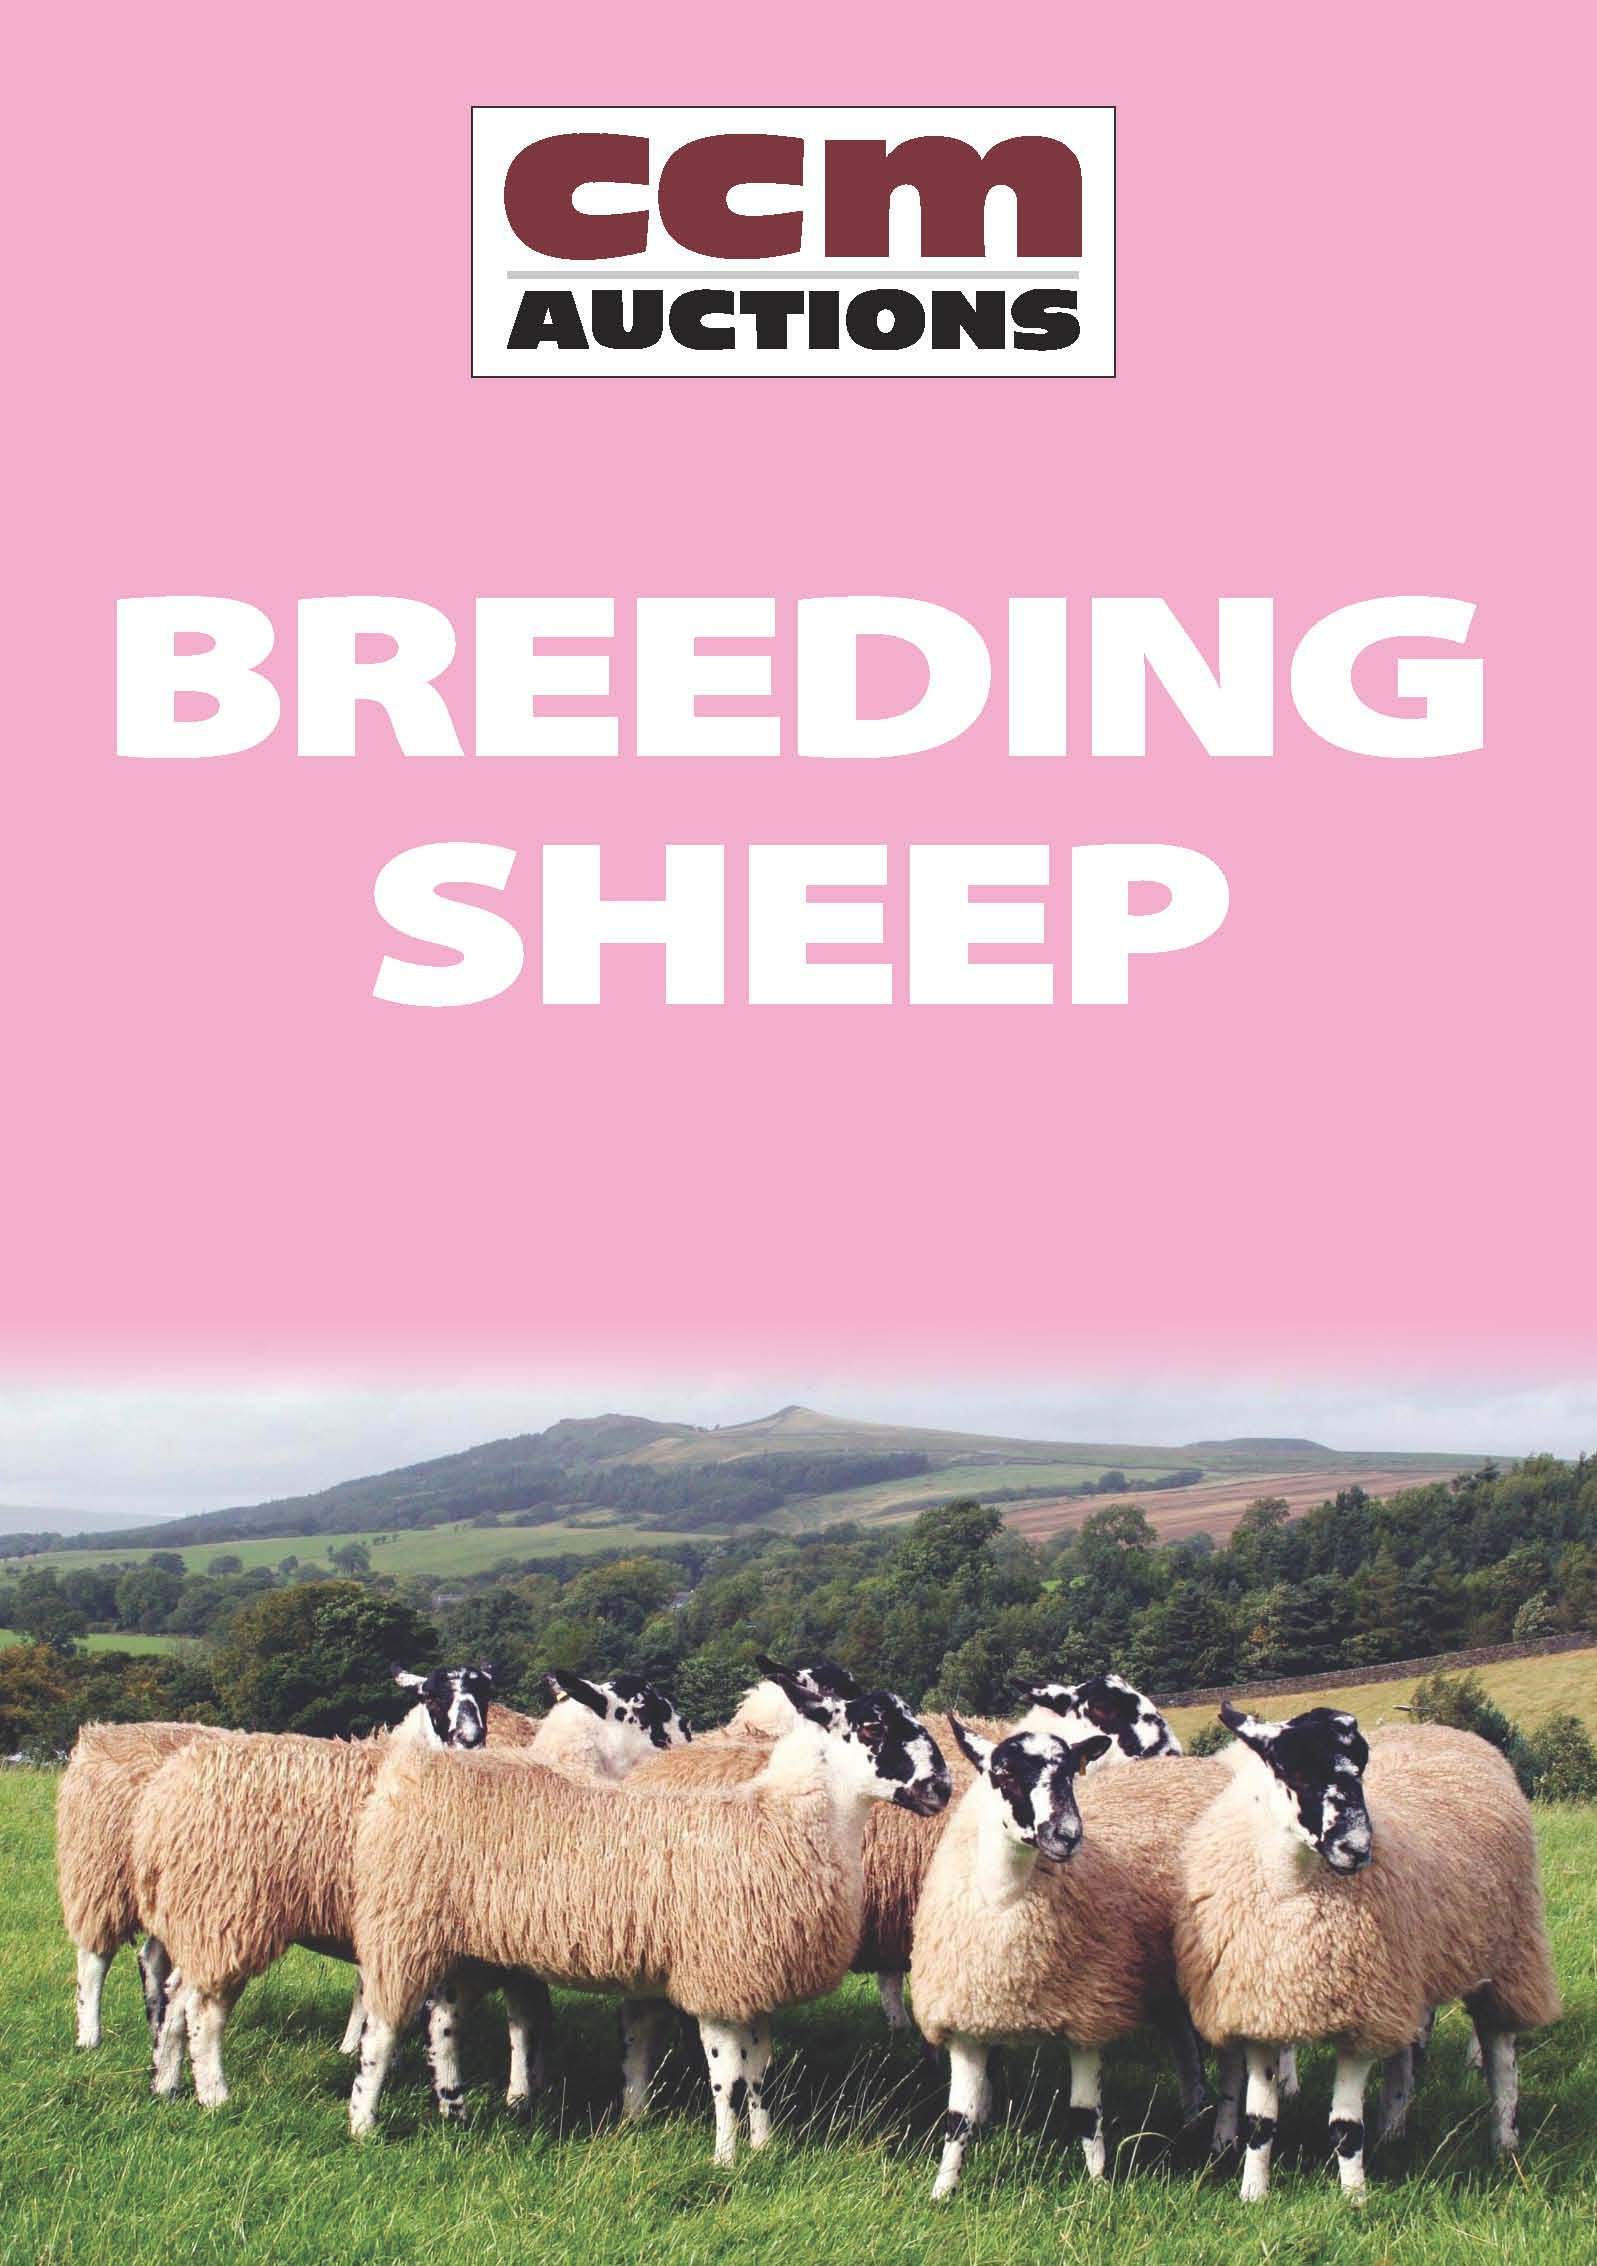 BREEDING SHEEP - TUESDAY 27TH SEPTEMBER 2016